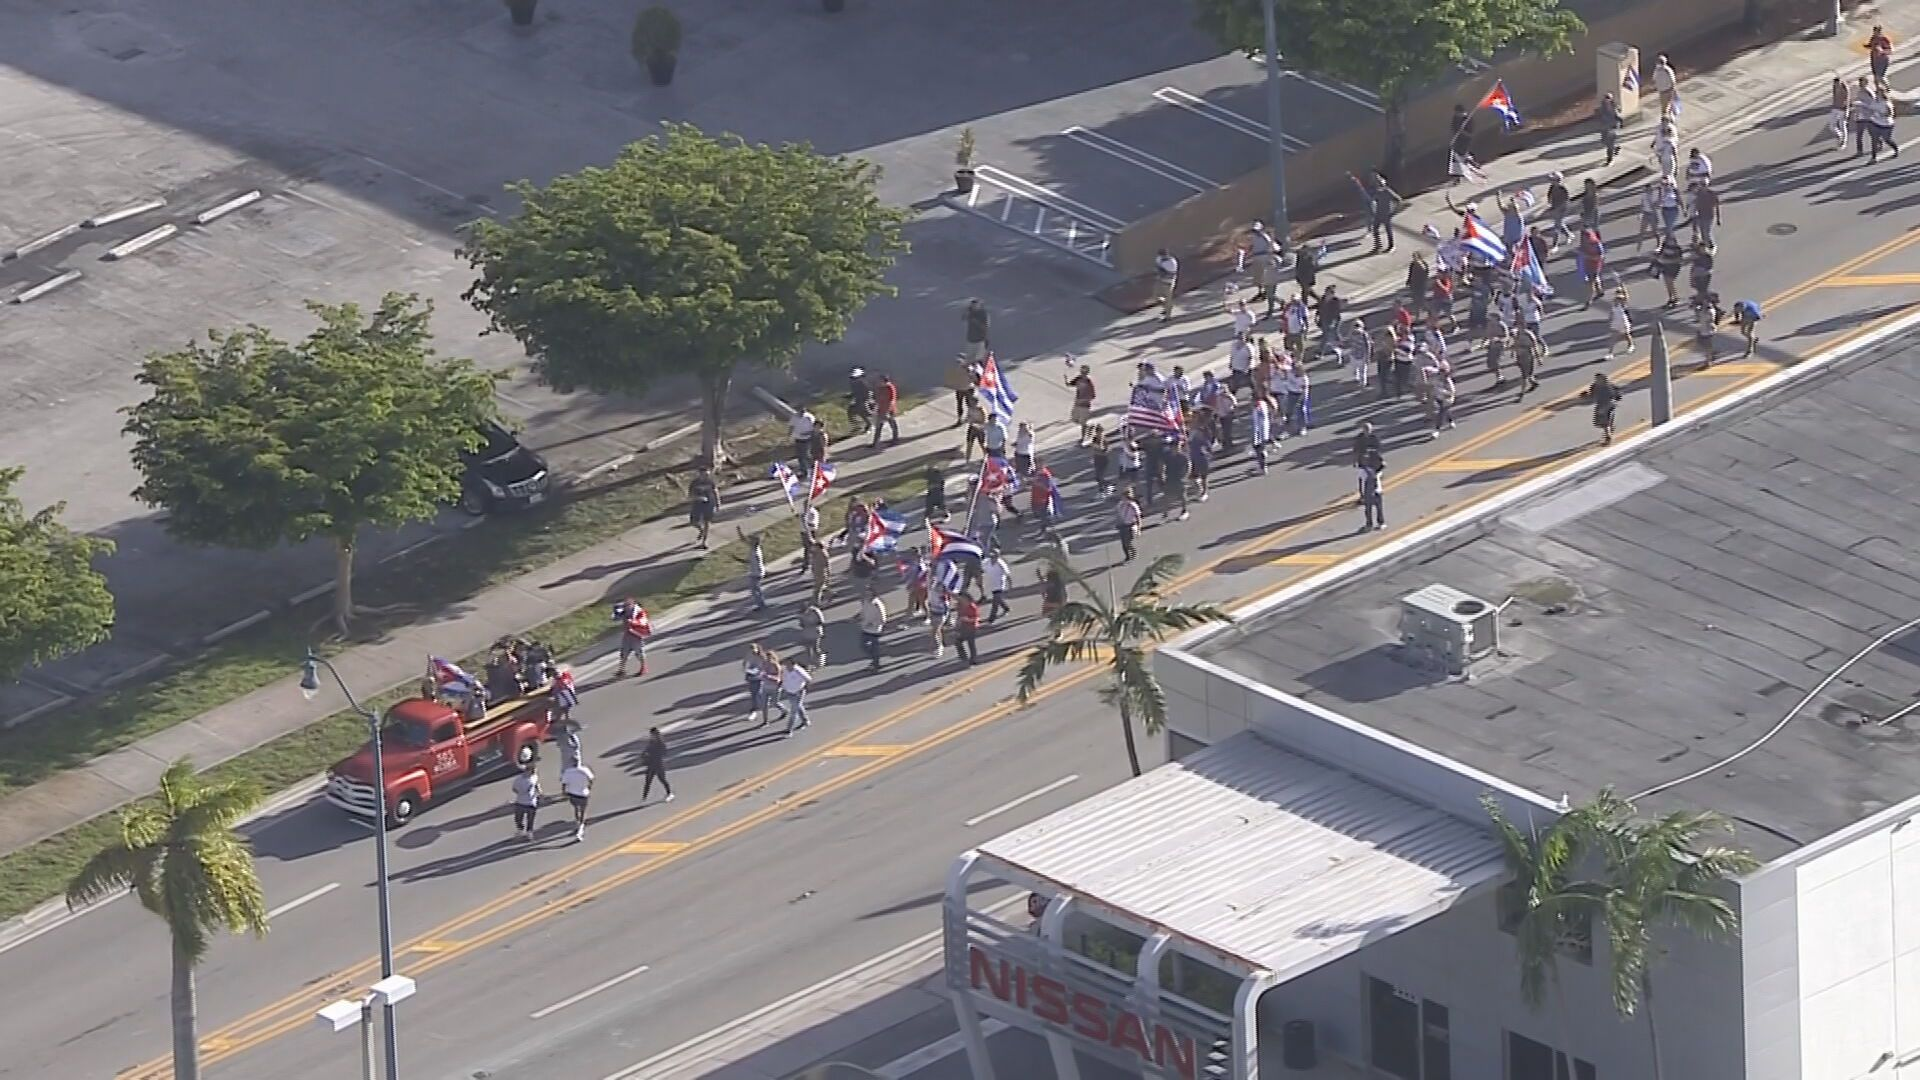 A few dozen SOS Cuba protesters marched Friday evening on Eighth Street in Miami's Little Havana.